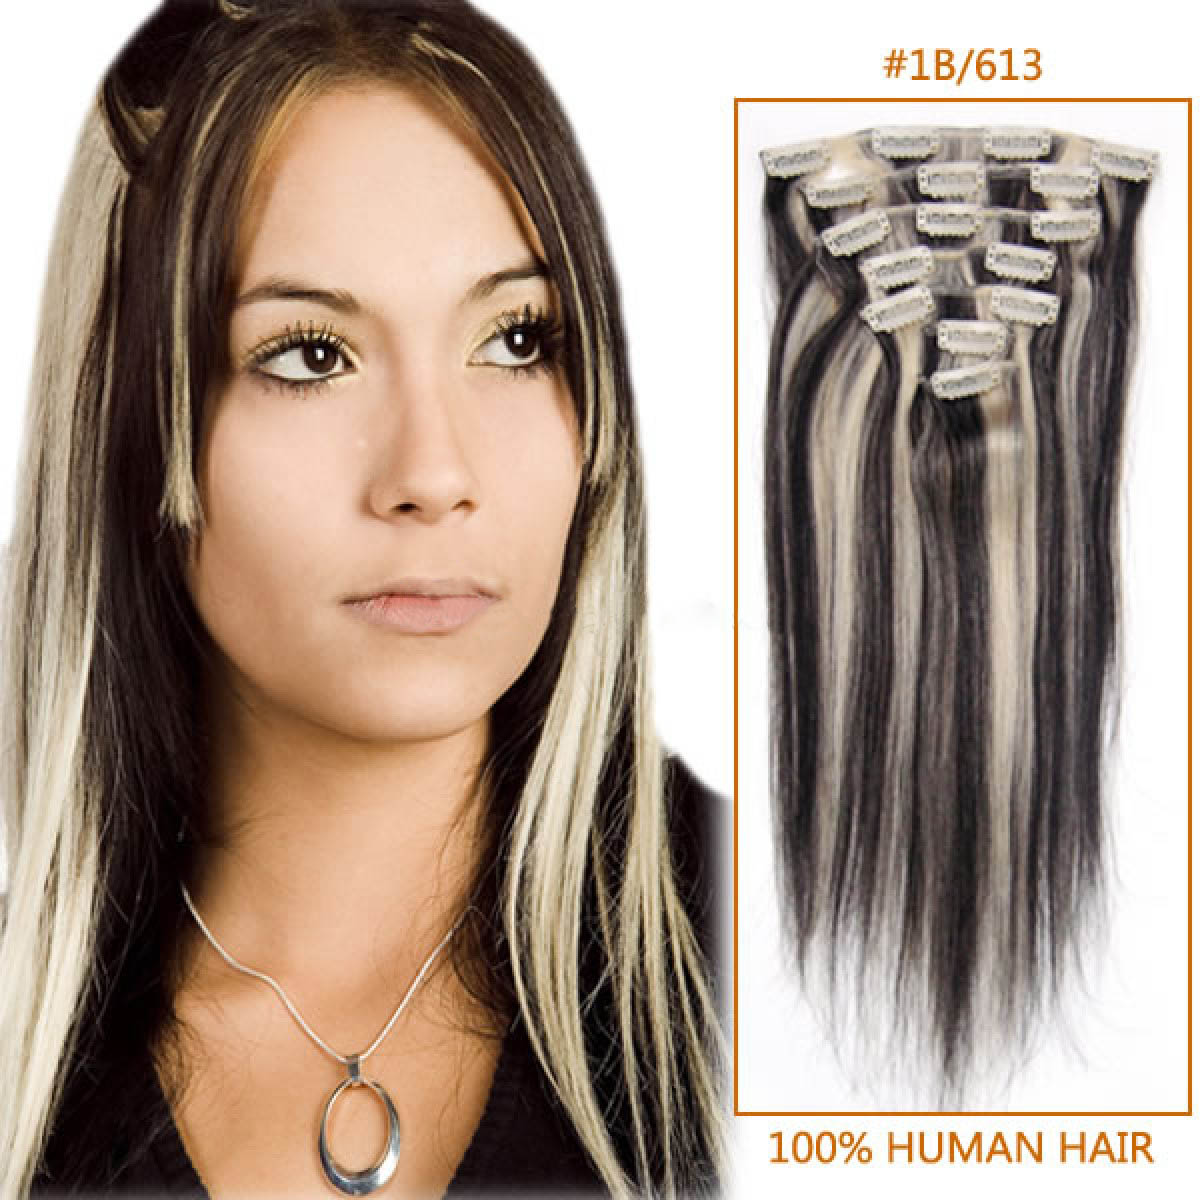 Inch 1b613 clip in human hair extensions 11pcs 28 inch 1b613 clip in human hair extensions 11pcs pmusecretfo Images